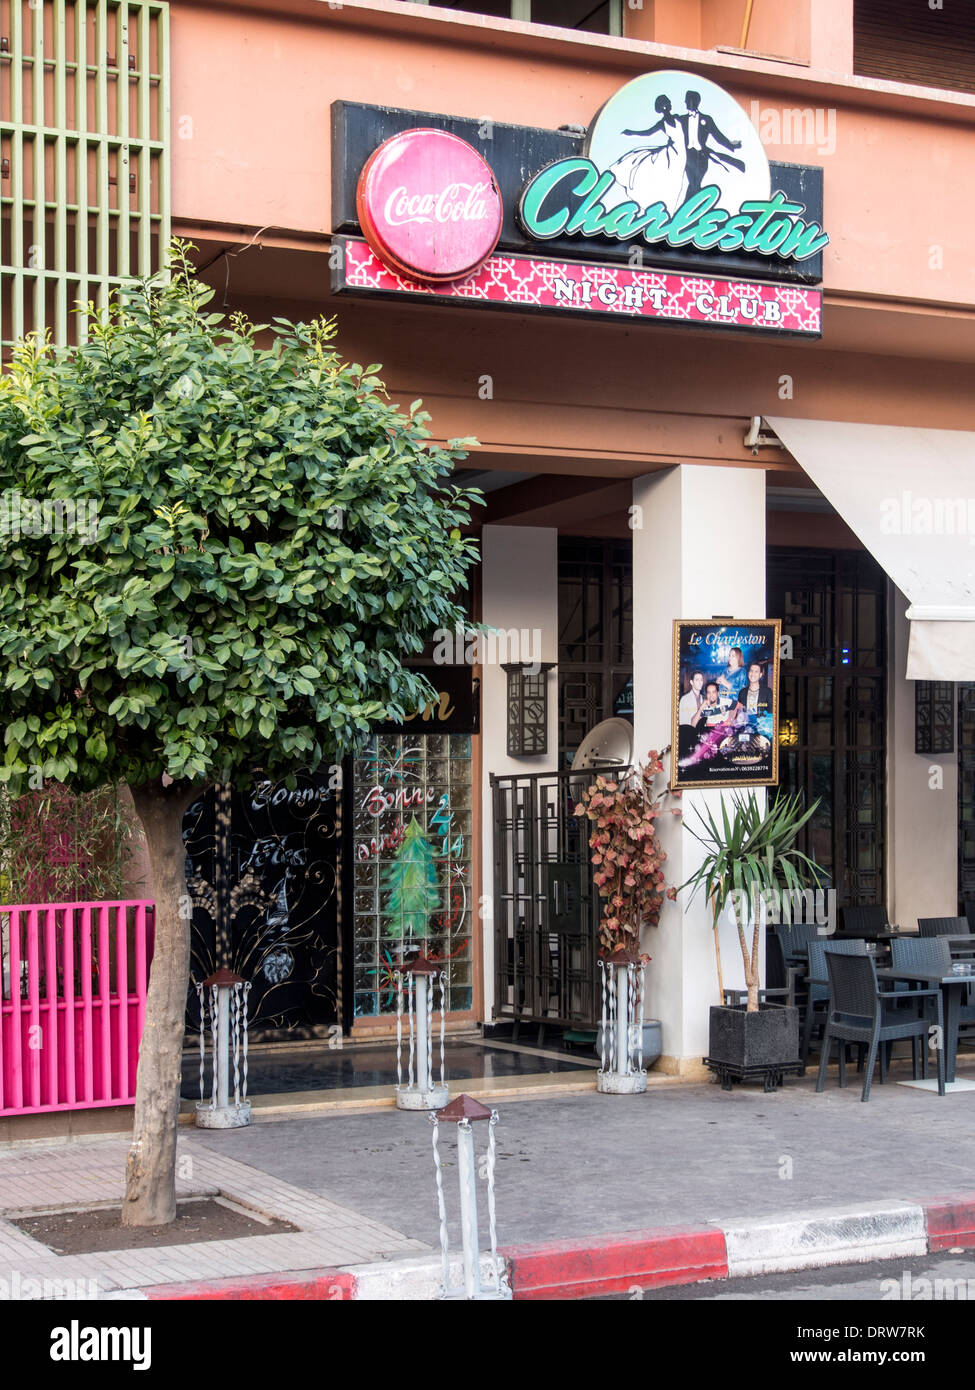 entrance to the charleston night club in the gueliz district of marrakech DRW7RK